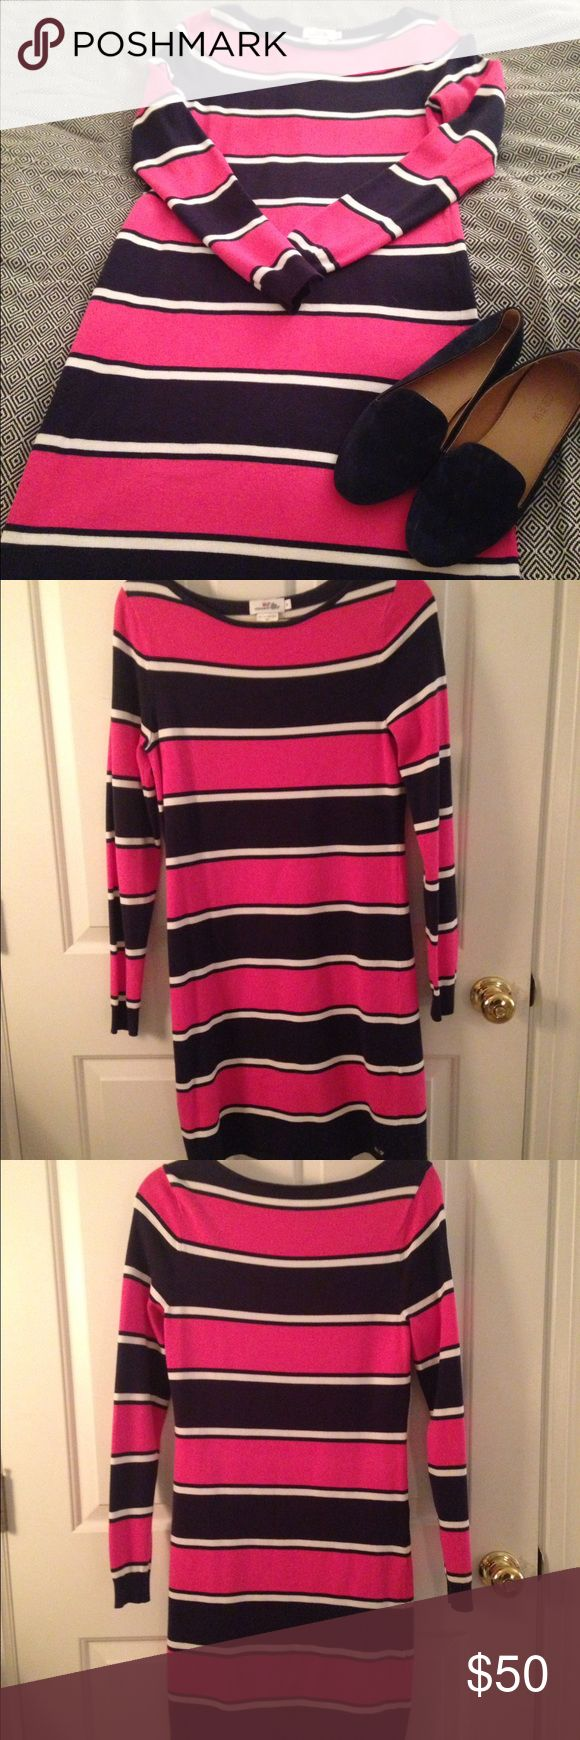 Vineyard Vines Sweater Dress, Pink/Navy, Small This adorable, Navy/Pink/White striped sweater dress from Vineyard Vines was purchased at a warehouse sale. It was only worn once and is in great condition! Vineyard Vines Dresses Long Sleeve